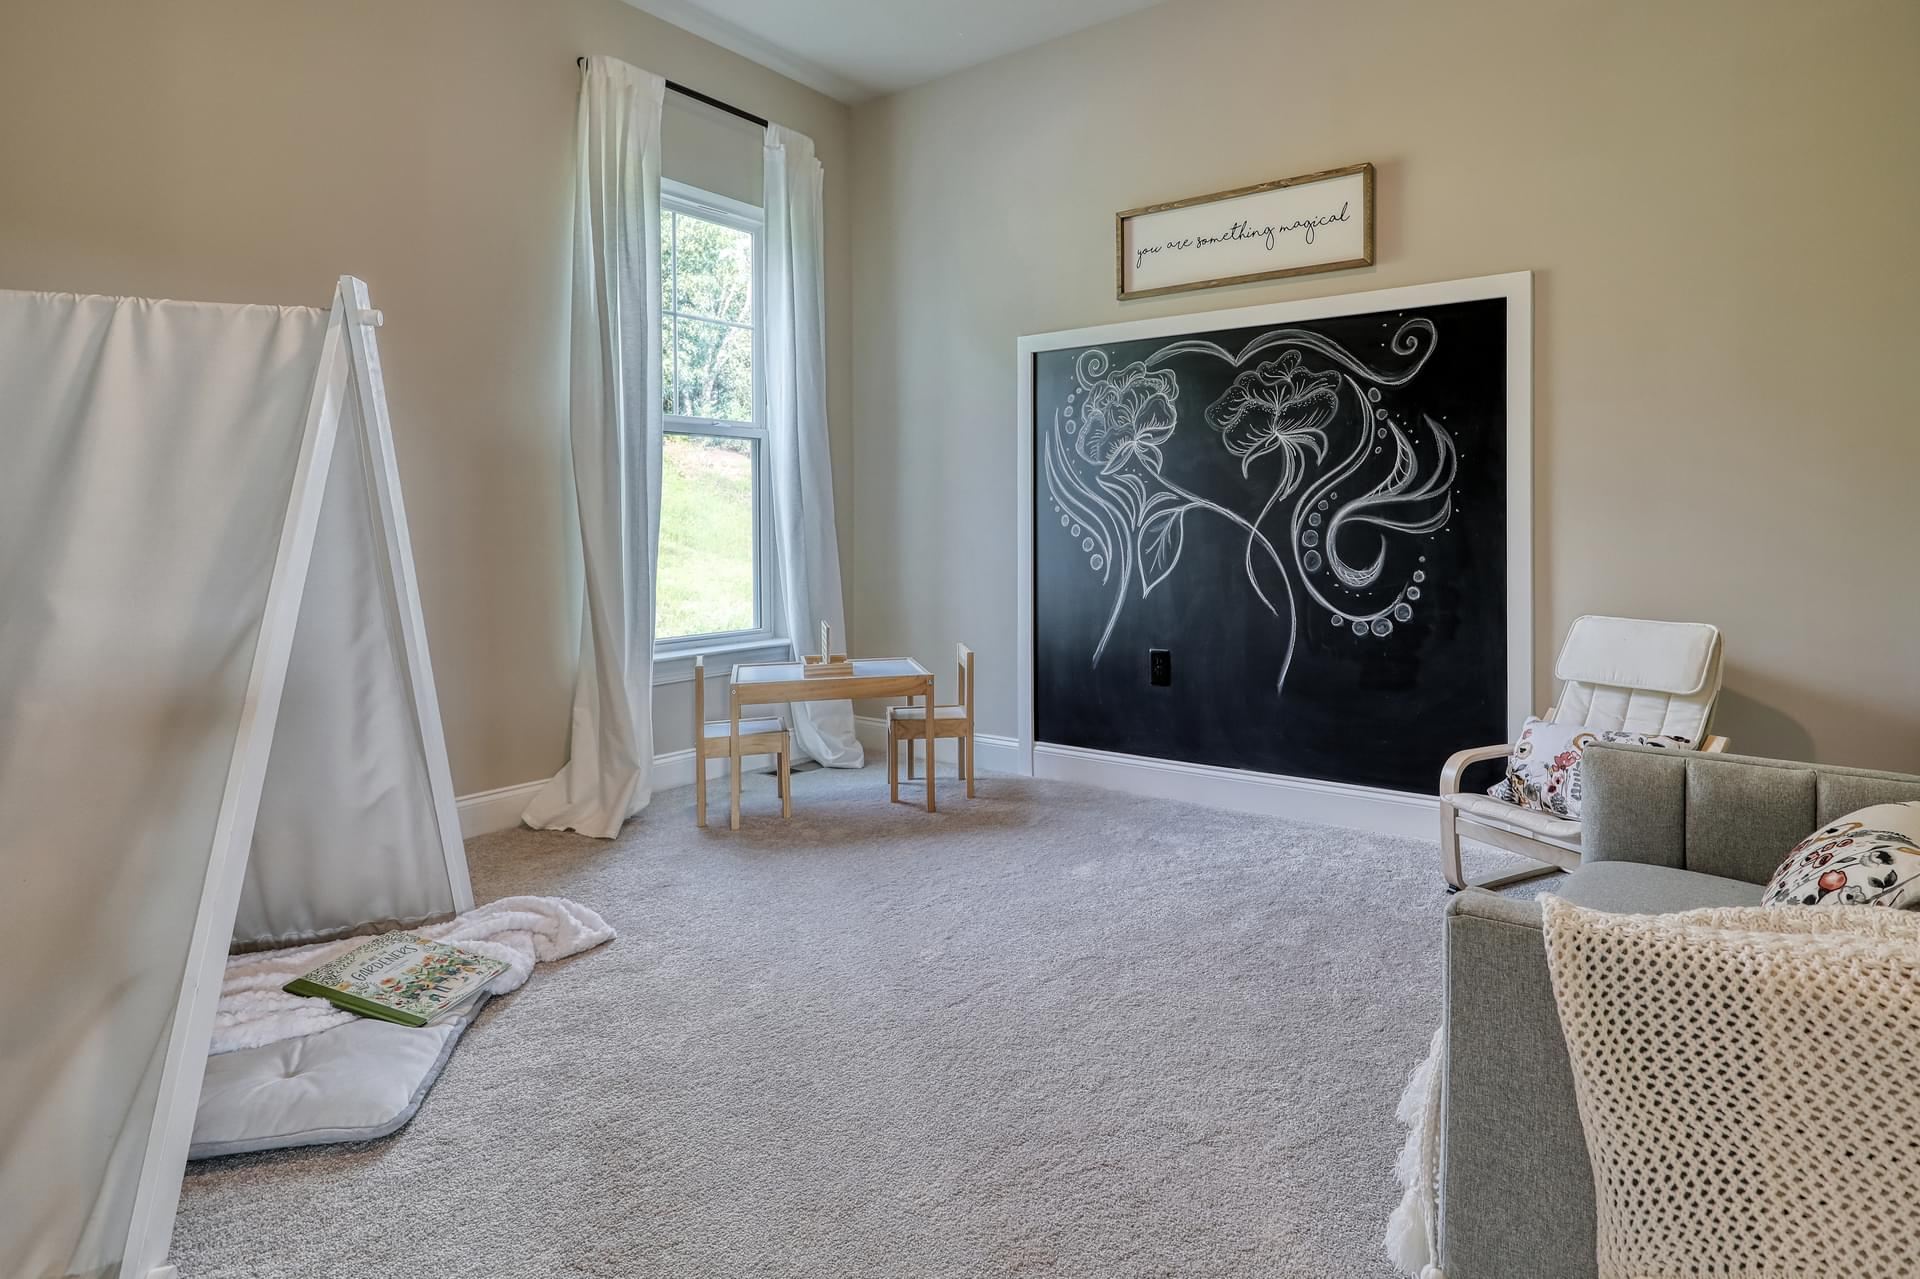 4br New Home in Boalsburg, PA